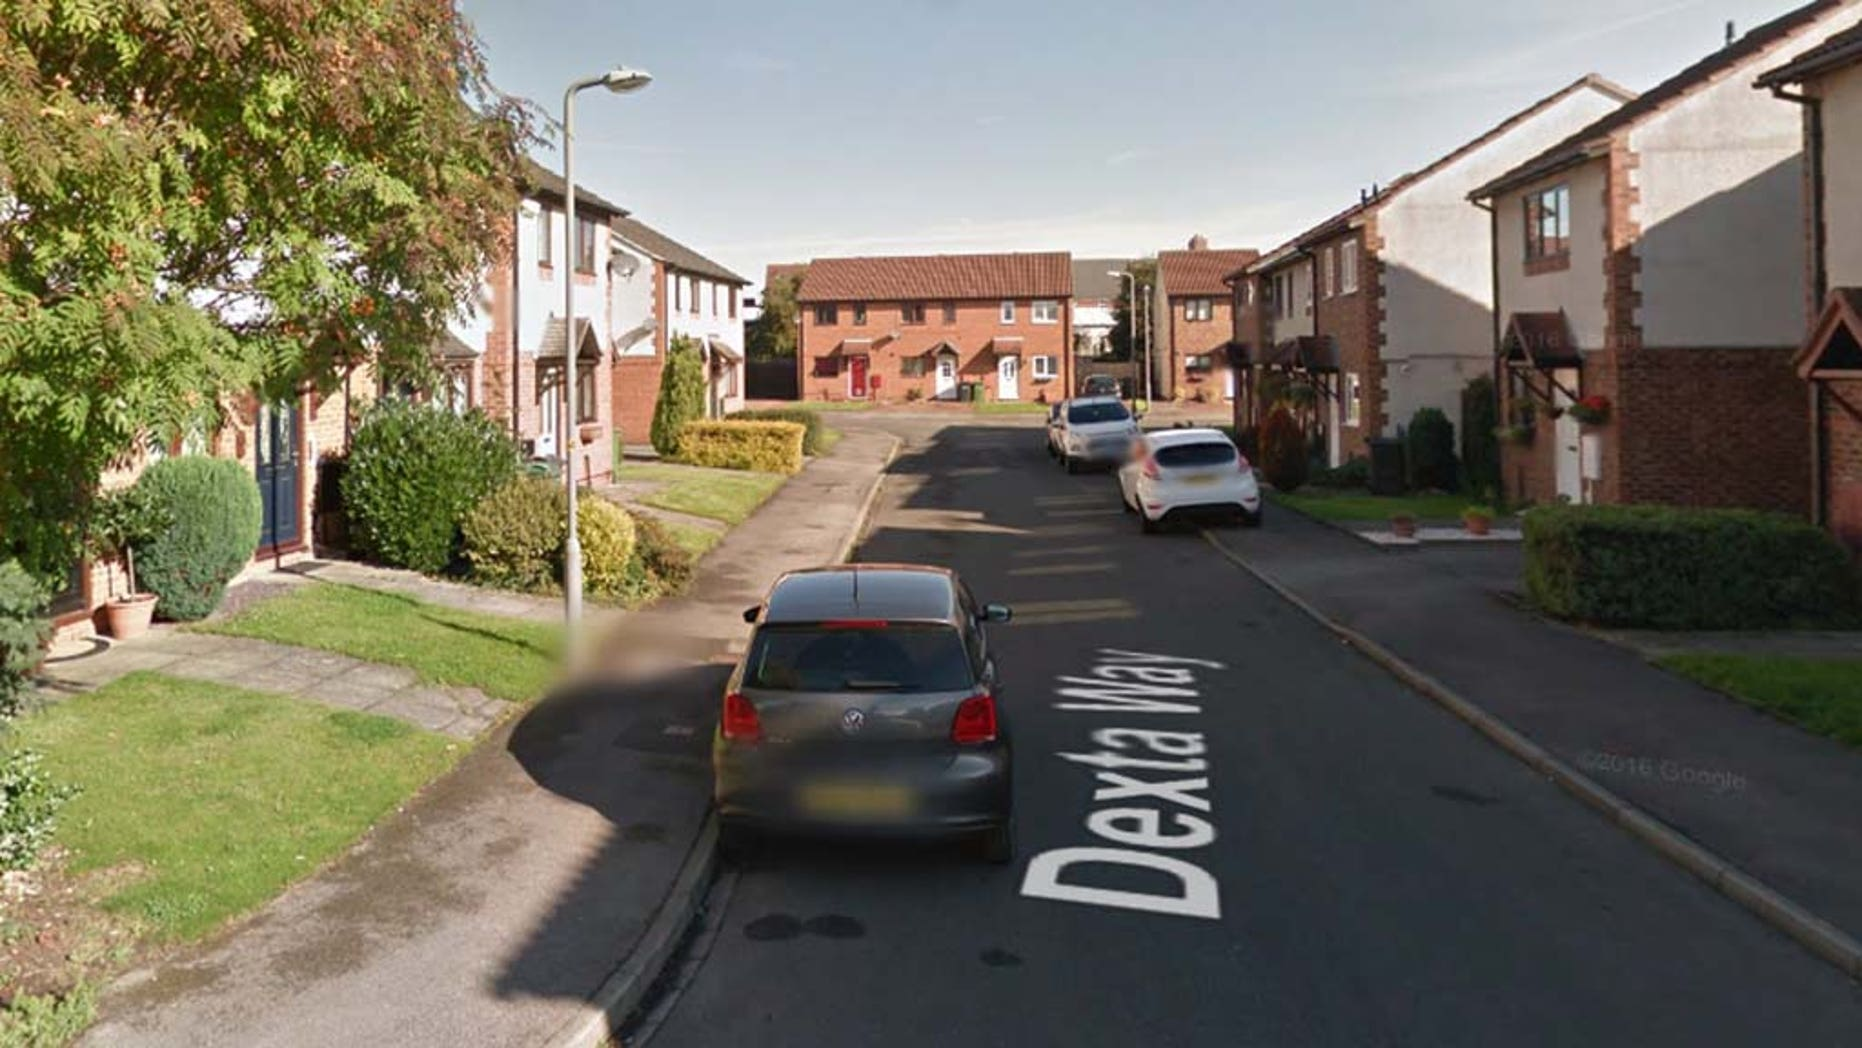 The remains of the infant were found under the stars in Dexta Way, Northallerton, U.K. (pictured)